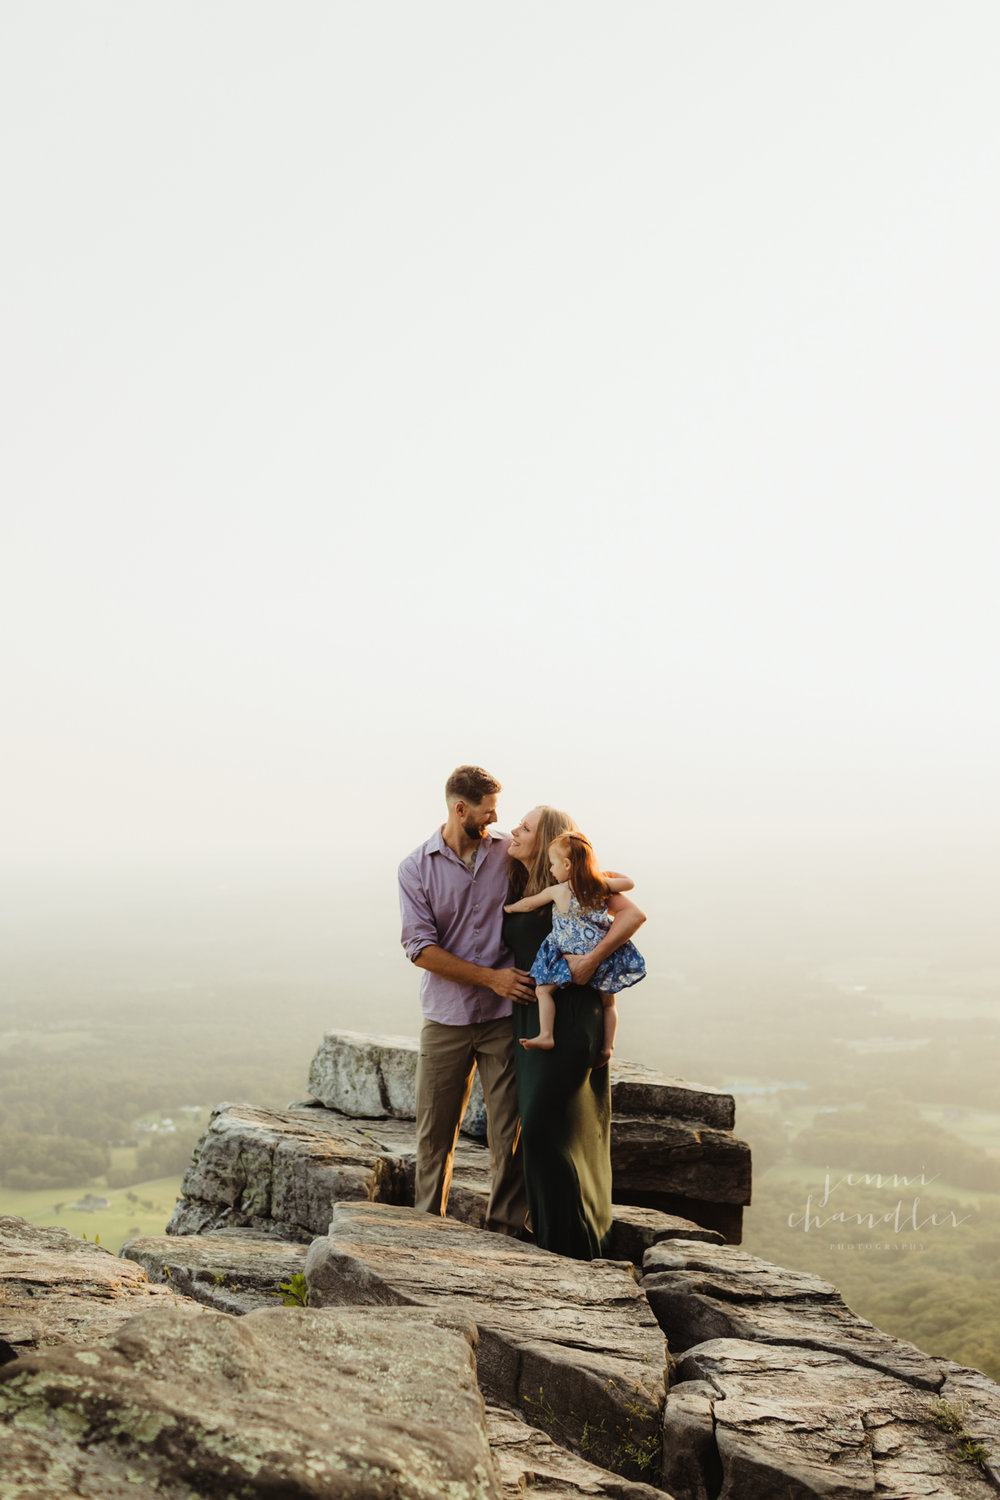 brevardnc_jennichandlerphotography_familysession_mountainview-35.jpg